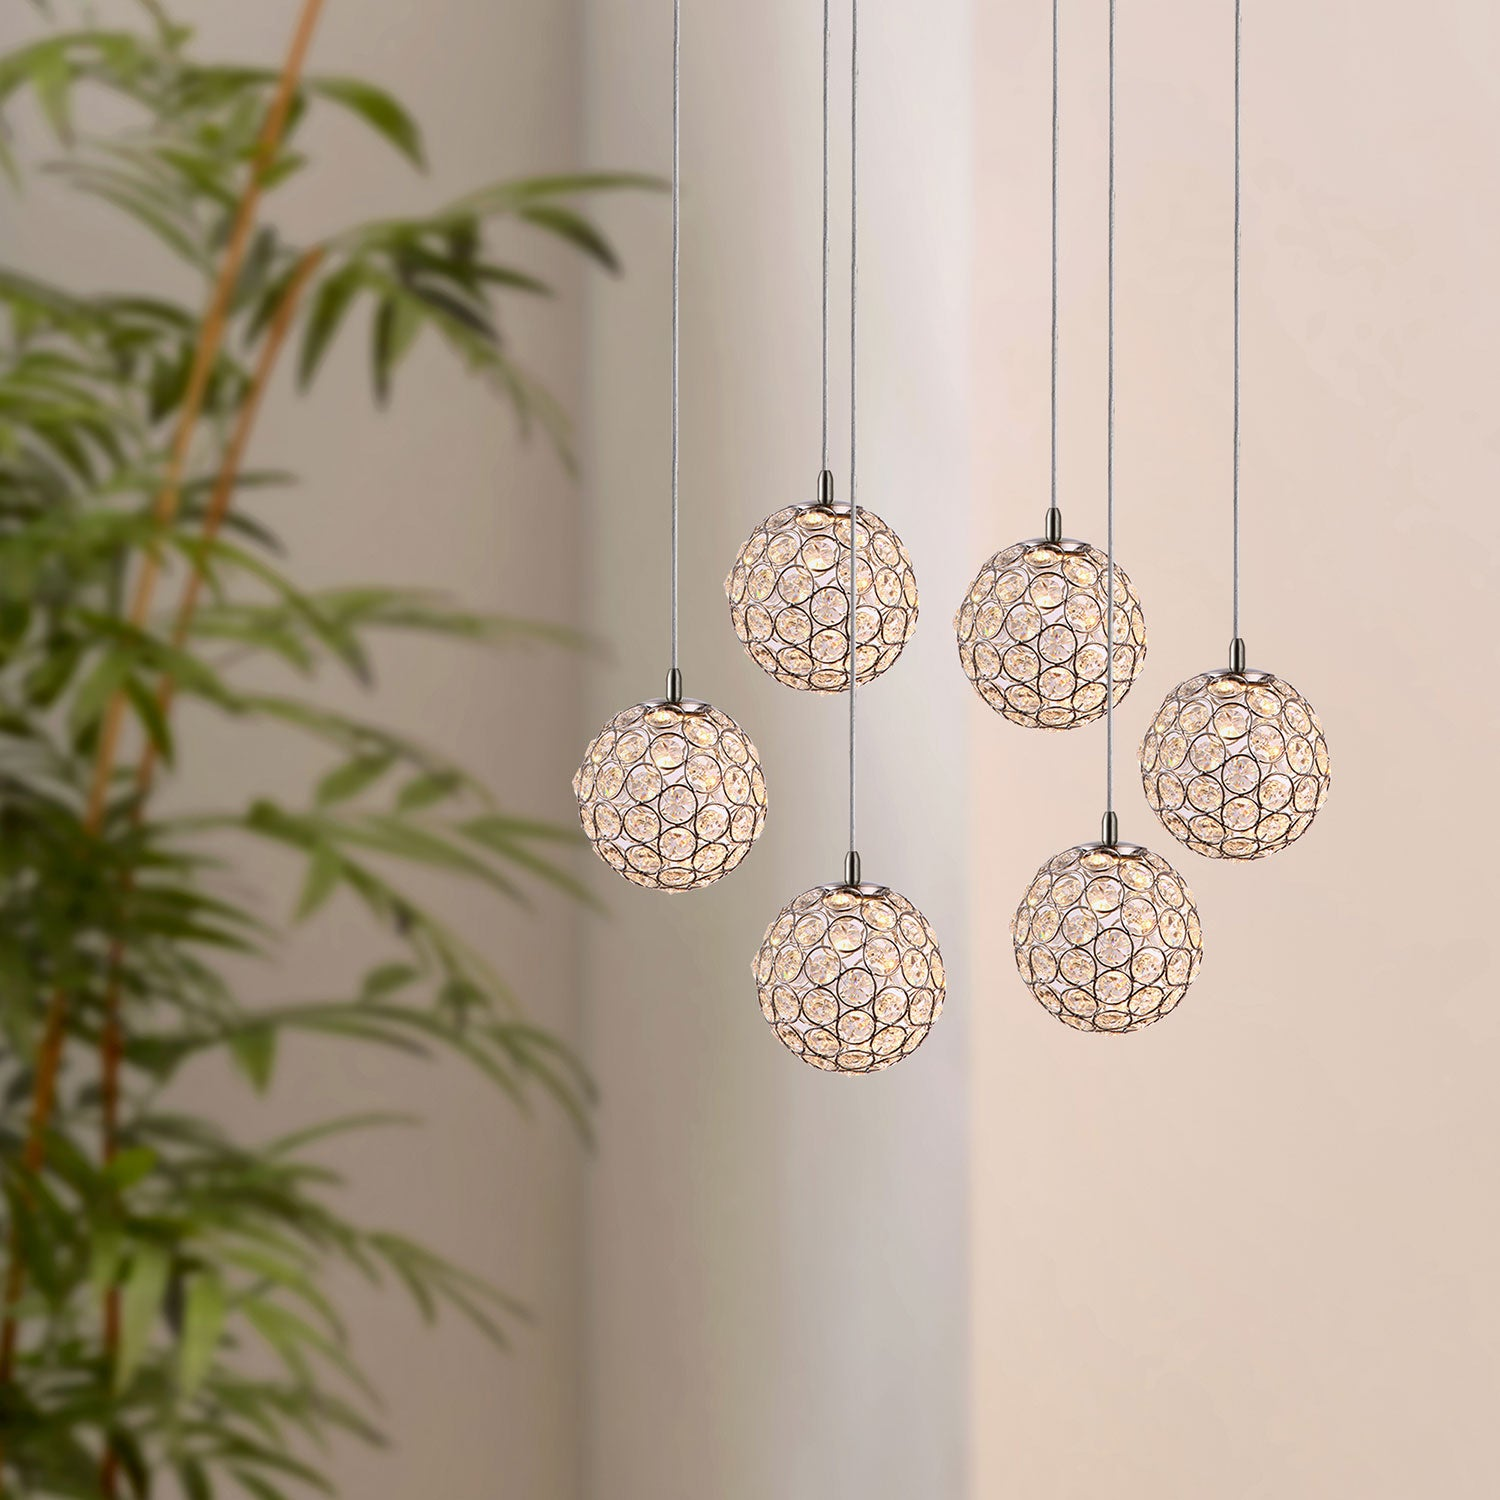 Mars 6-light LED mini pendant